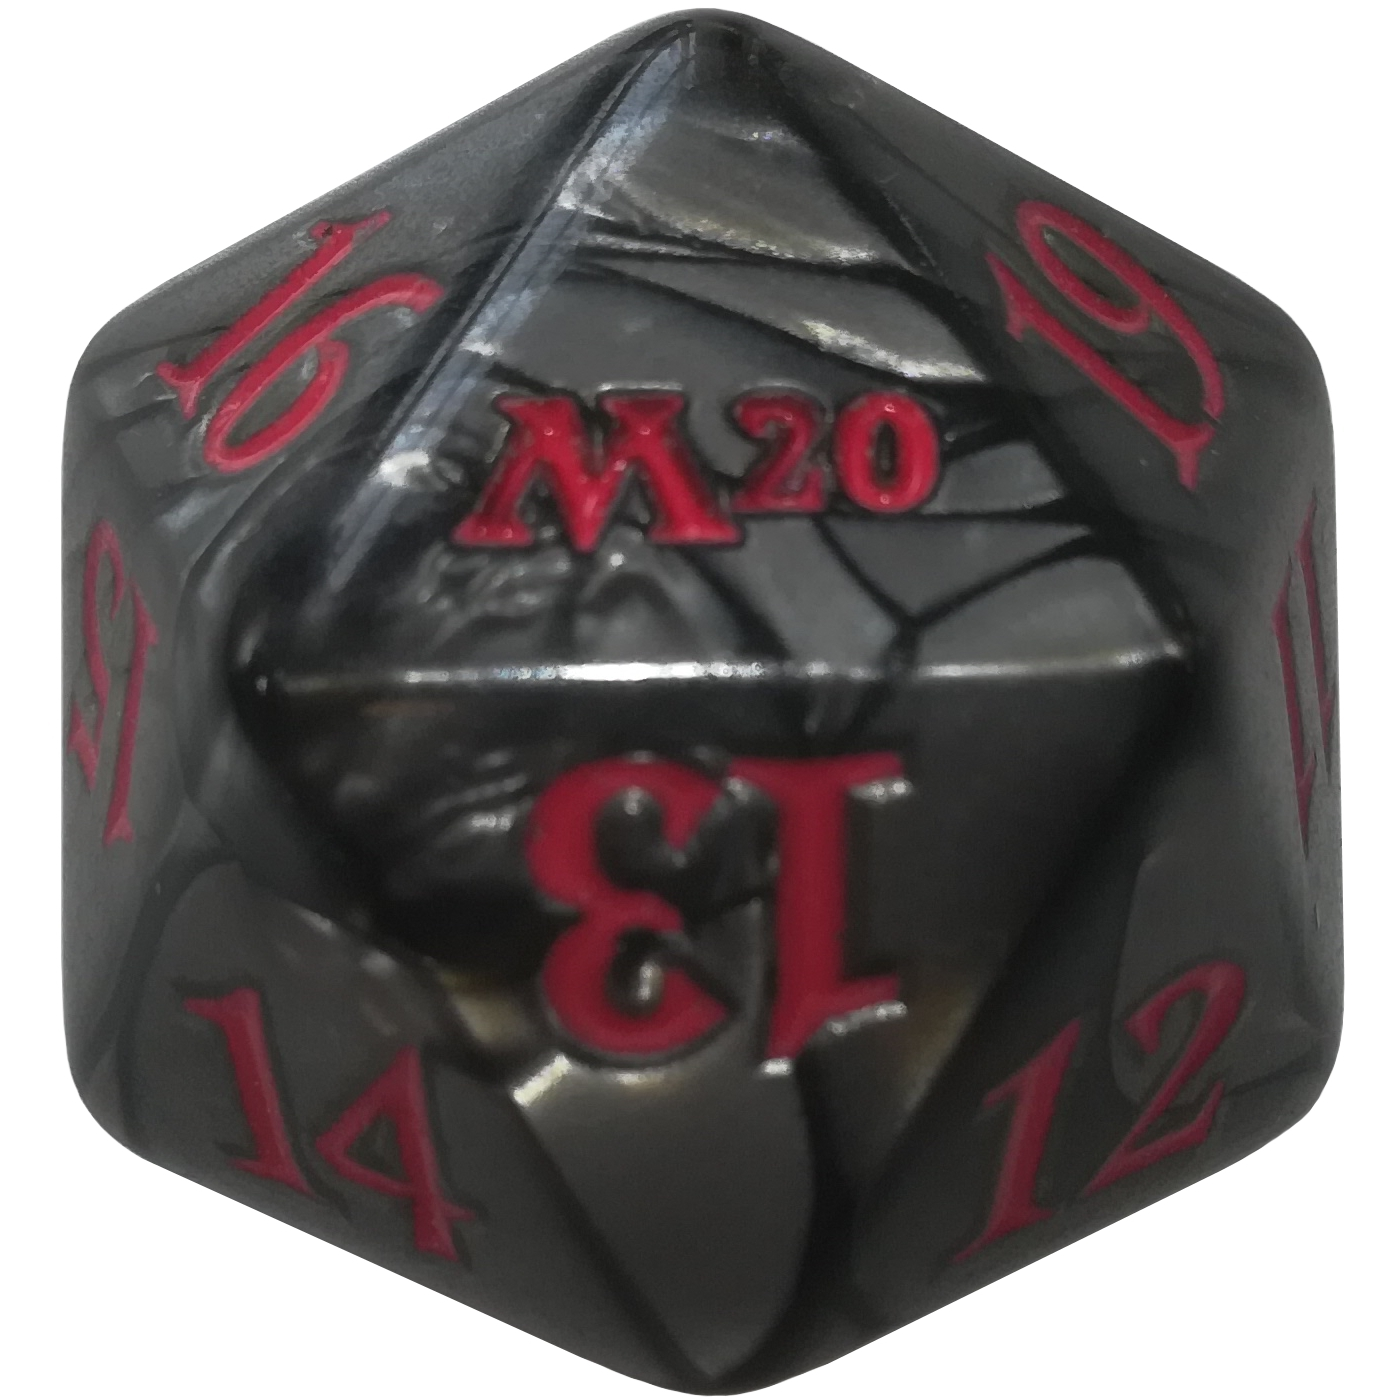 Core Set 2020 D20 Oversized Dice Spin Down MTG Magic the Gathering